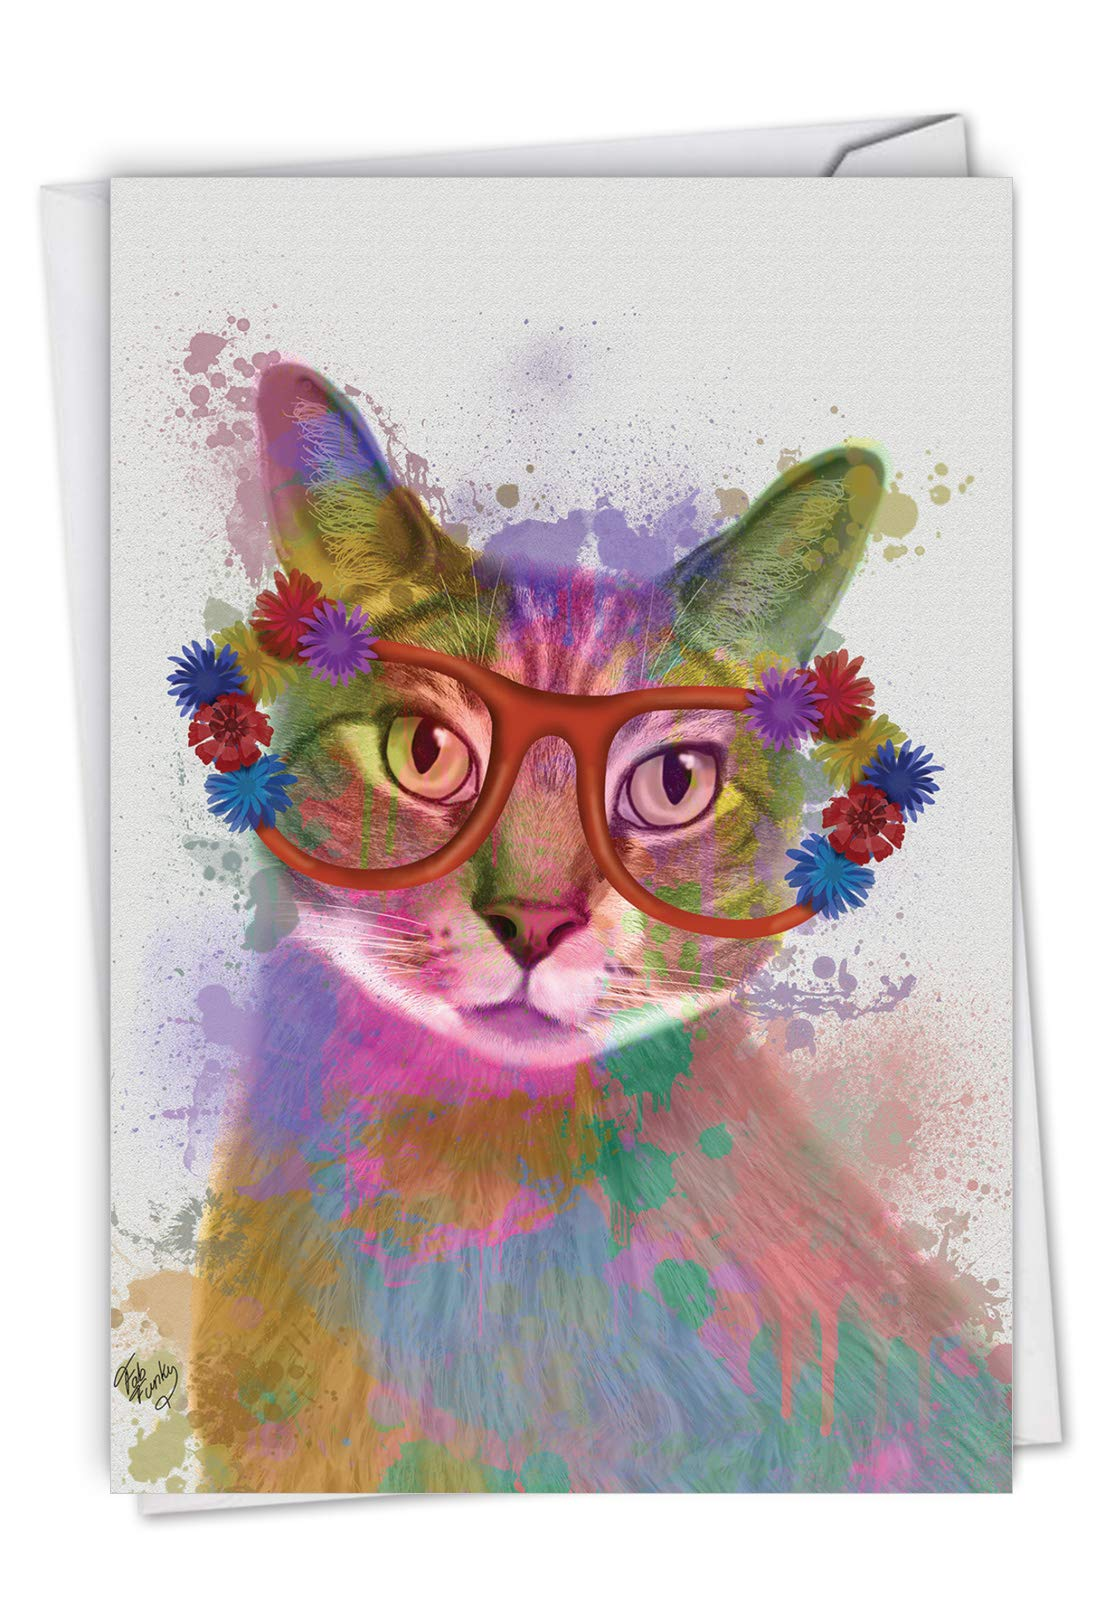 The Best Card Company, Funky Rainbow Cats - Happy Birthday Greeting Card - Colorful Animal Watercolor, Fun Kids Card C6199IBDG